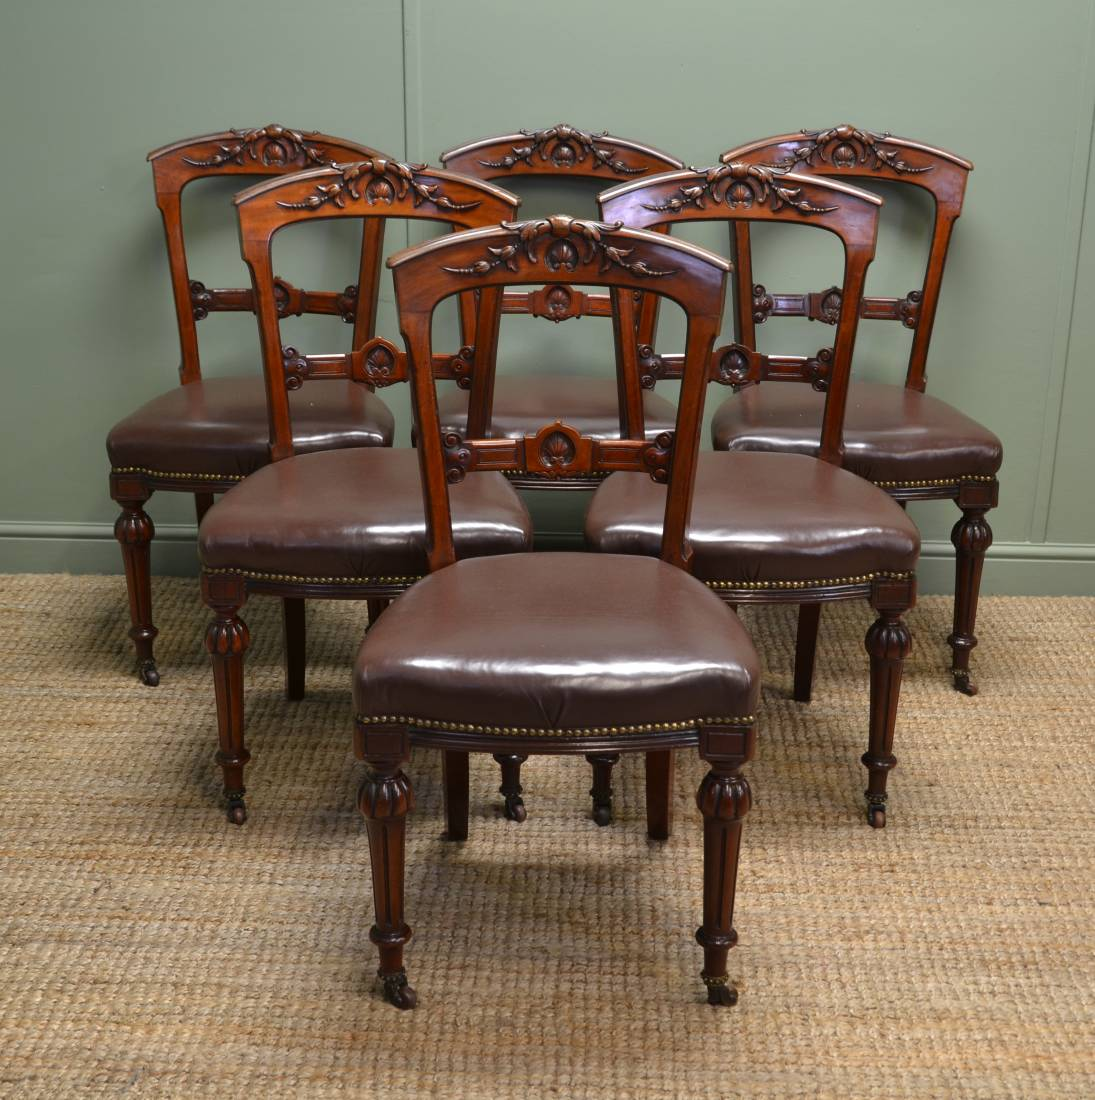 Antique victorian dining chairs - Superb Quality Set Of Six Victorian Antique Walnut Dining Chairs